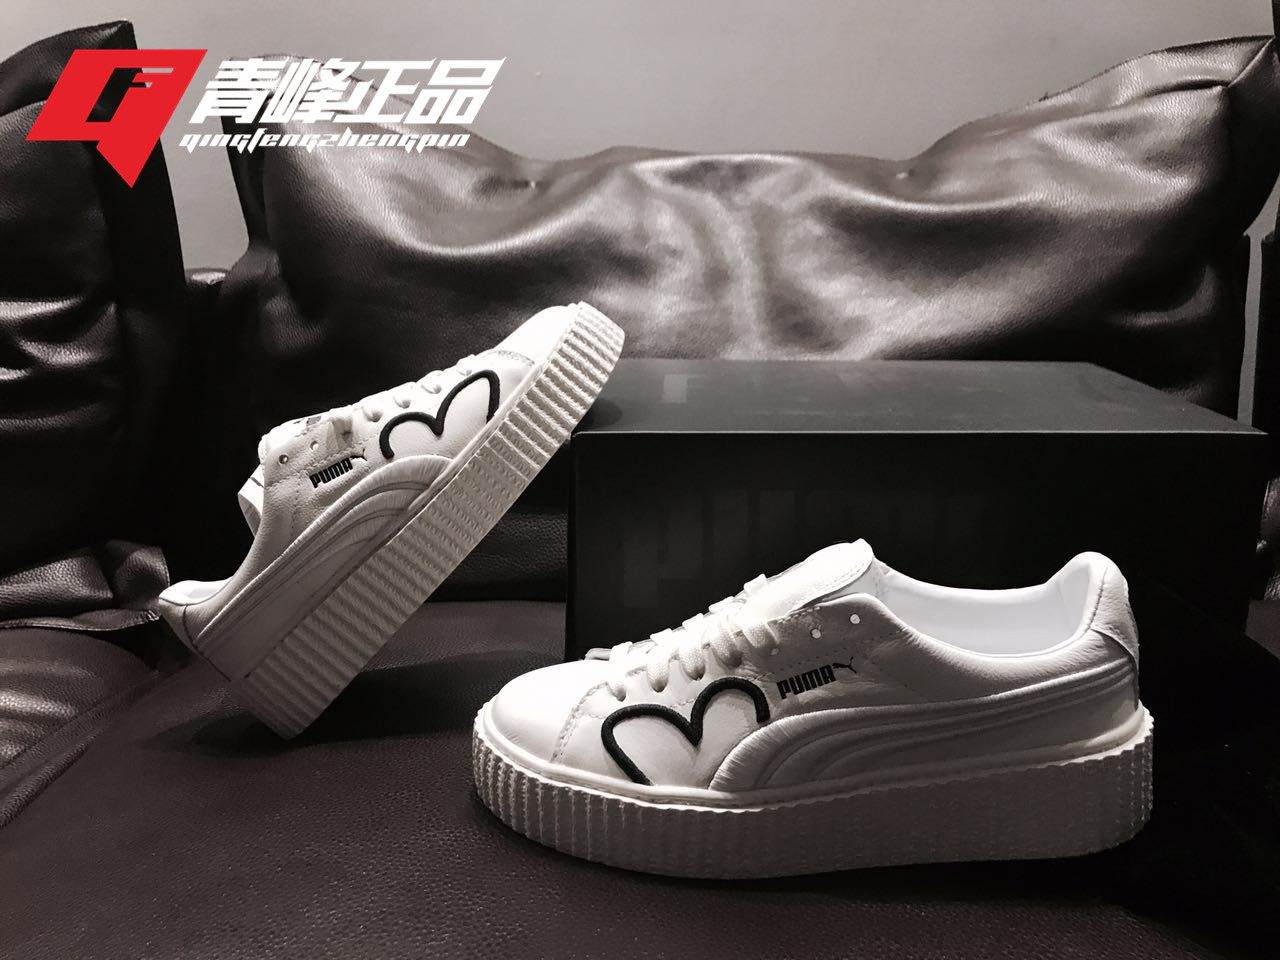 ... Hummer Puma Fenty Creeper Rihanna platform shoes joint charity love  small white shoes 366403 593c2f8c2